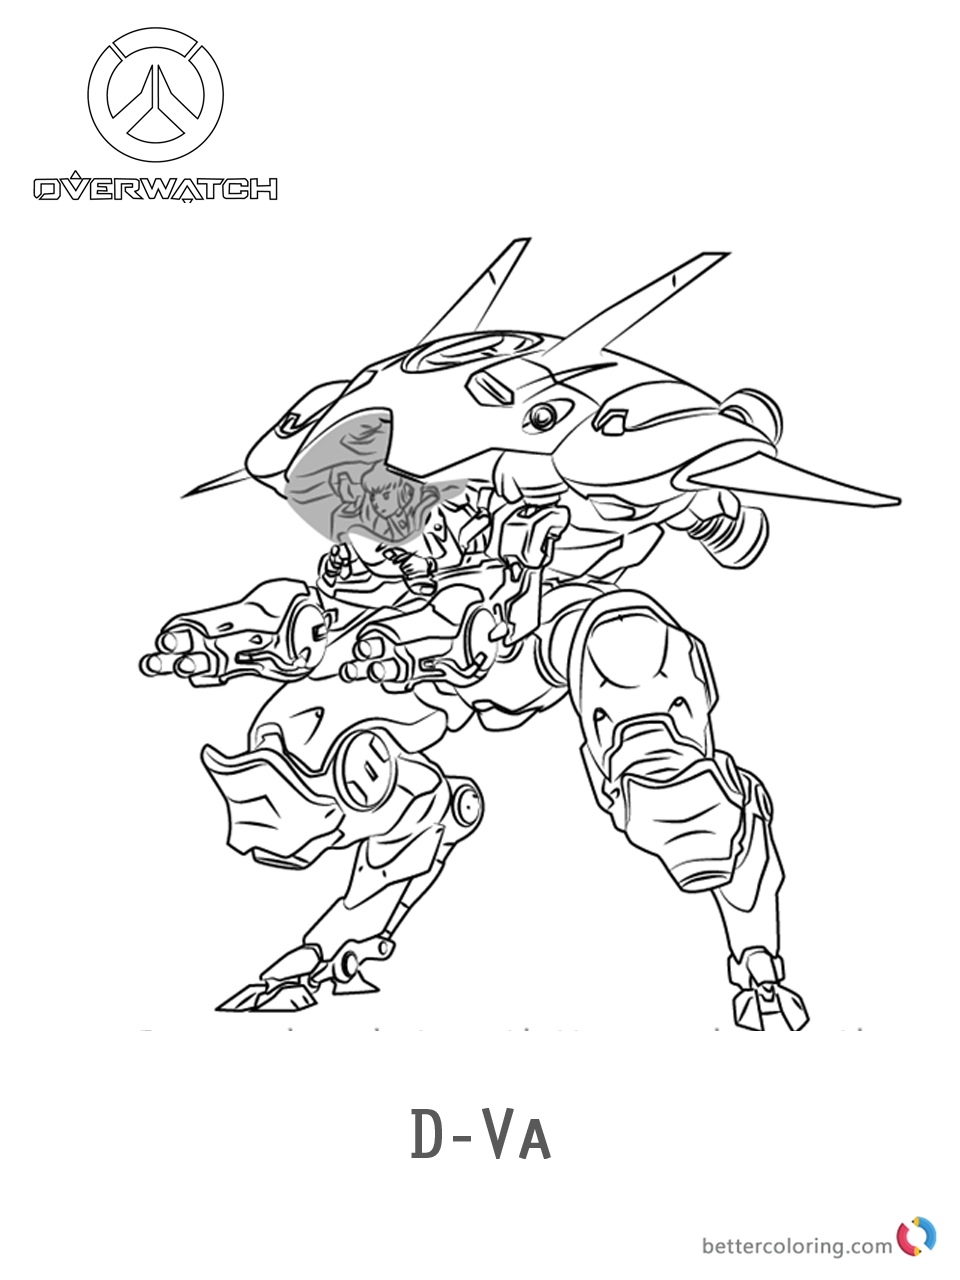 DVa from Overwatch Coloring Pages